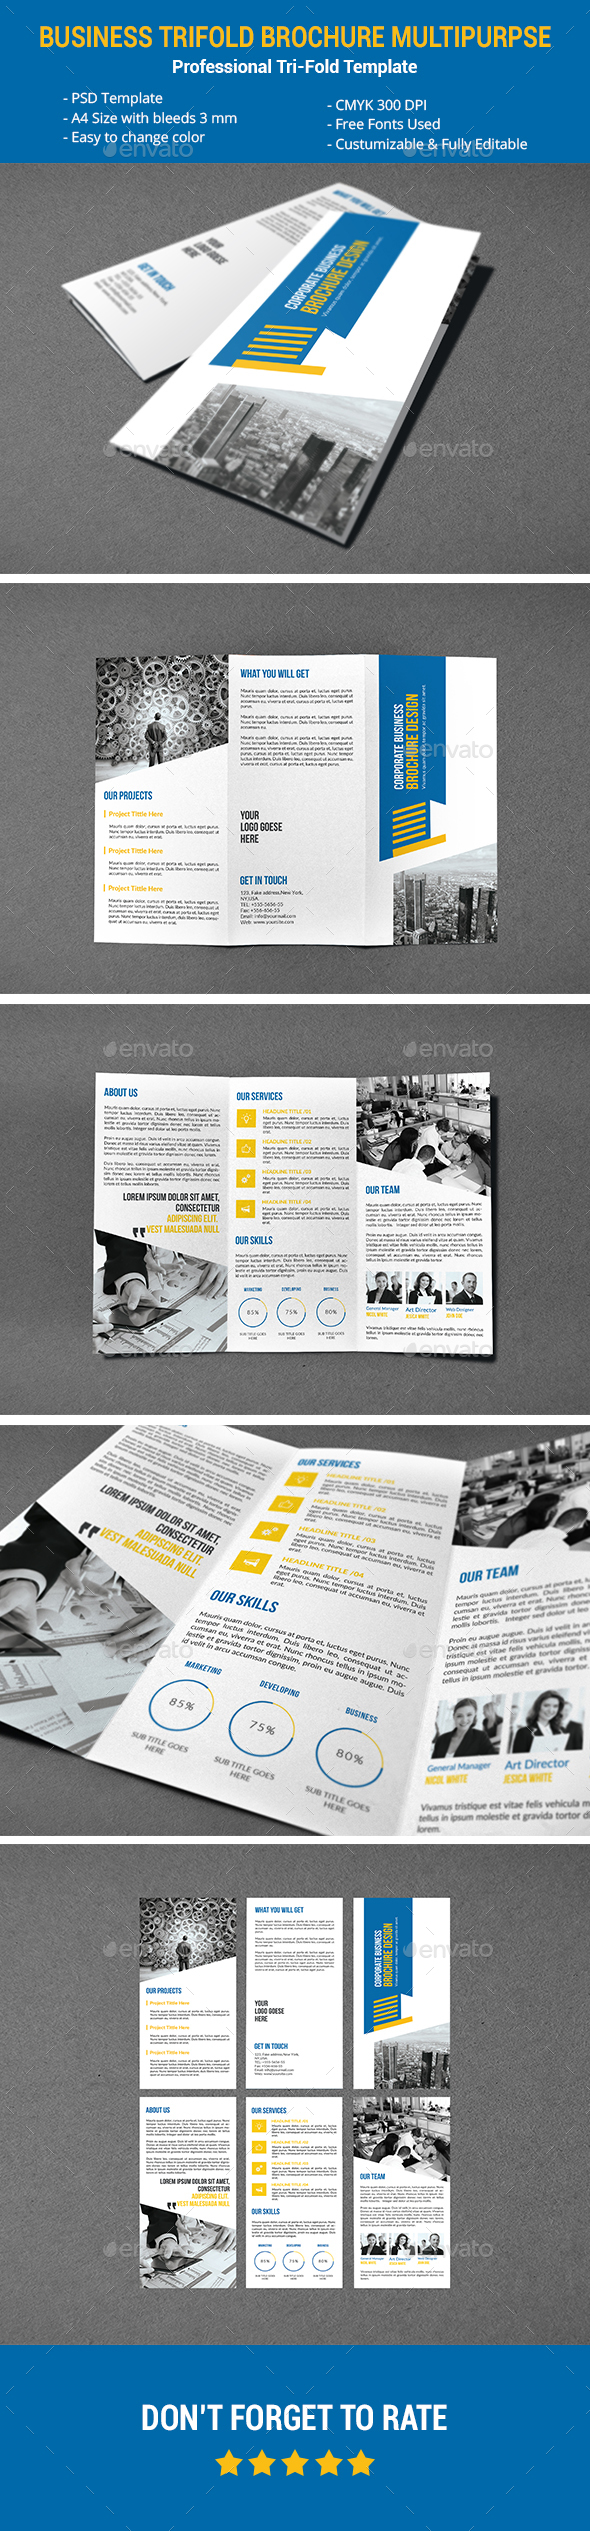 Business Tri-fold Brochure Multipurpse - Corporate Brochures